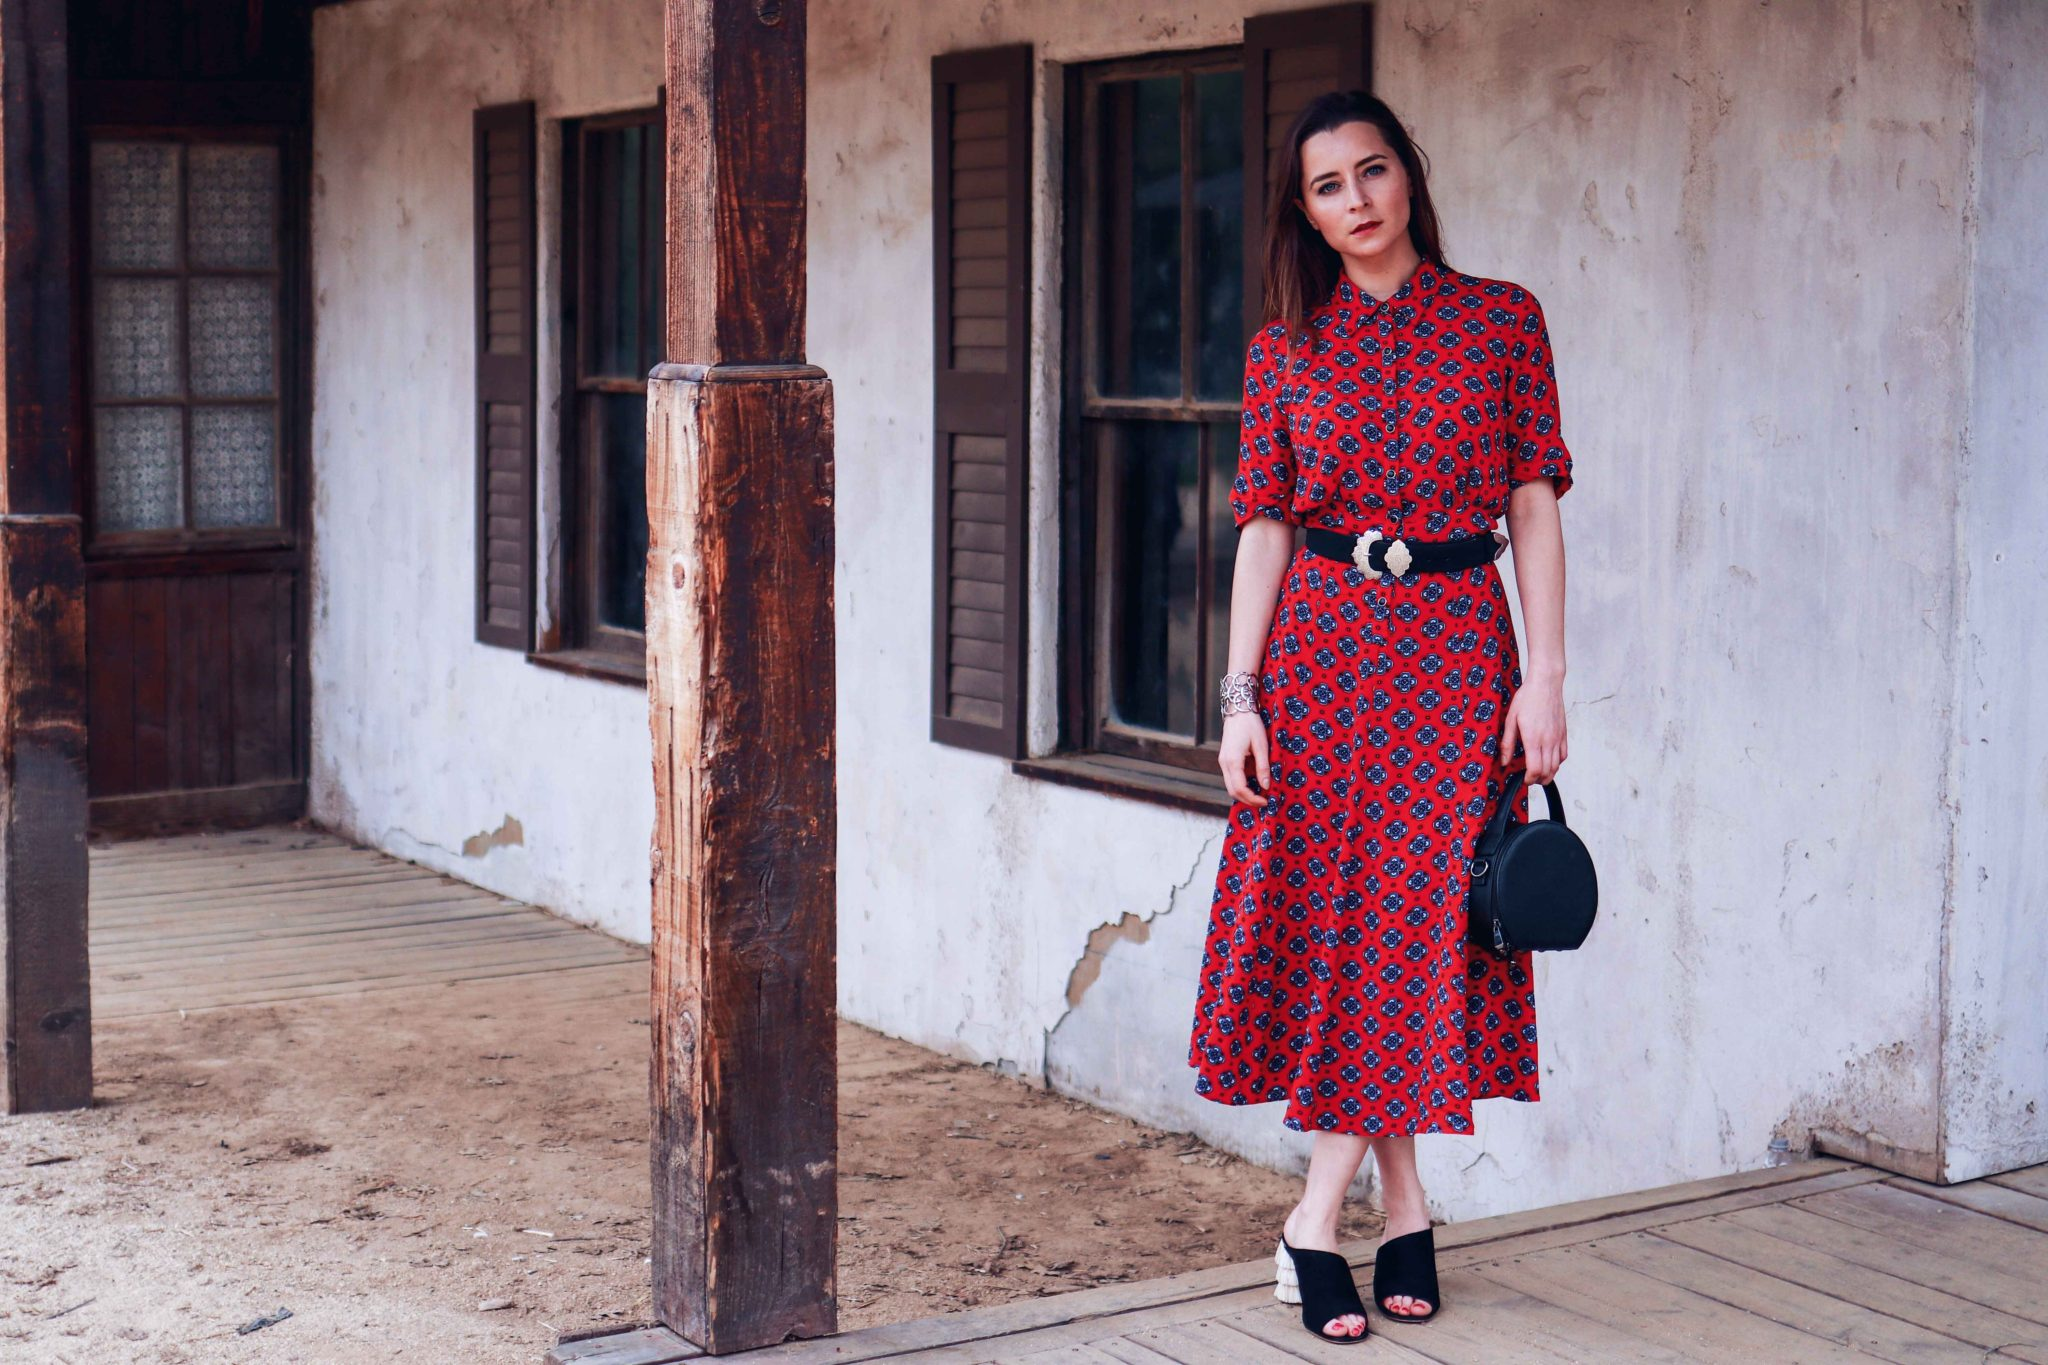 Sandro Paris Western Dress. Spring Fashion 2018 trend: Western Outfit. Channeling Westworld, one of the coolest show to watch on HBO this April - More on Houseofcomil.com. Pictures Julia Comil French Fashion Blogger Los Angeles